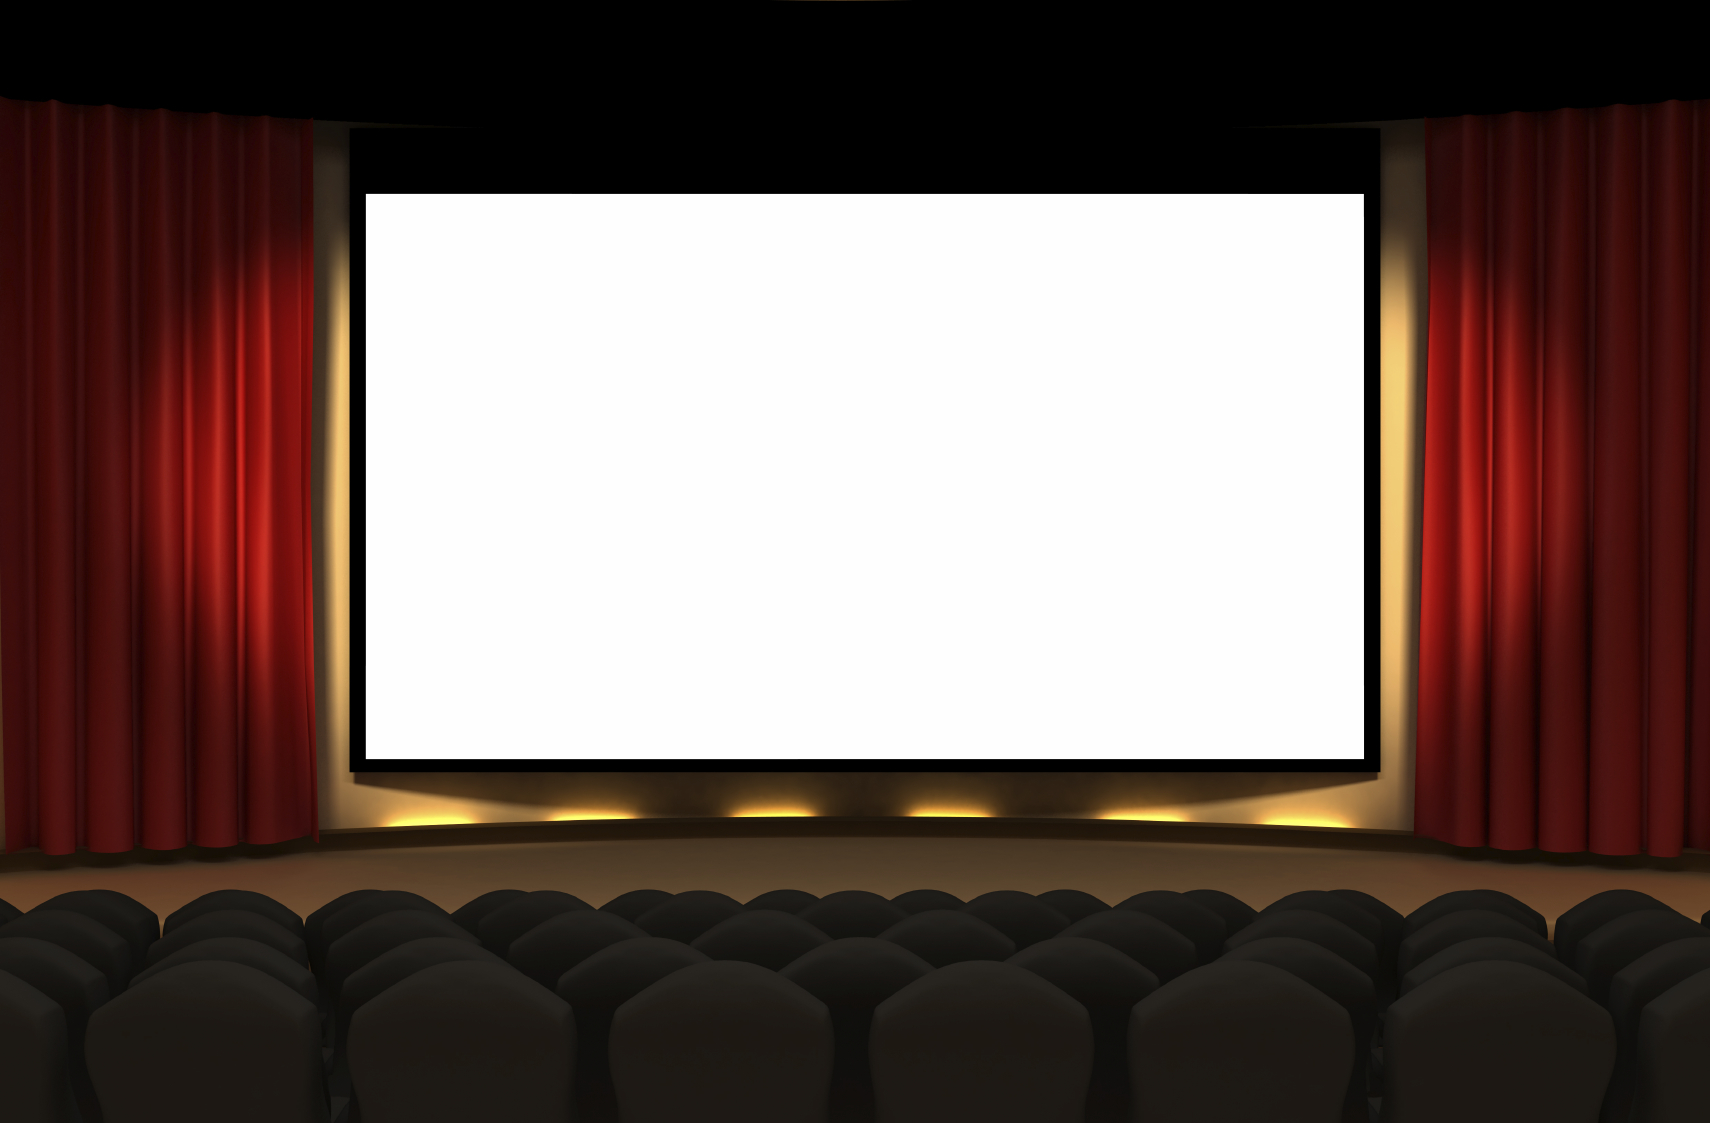 Outdoor movie screen clipart banner library Free Movie Cinema Cliparts, Download Free Clip Art, Free ... banner library